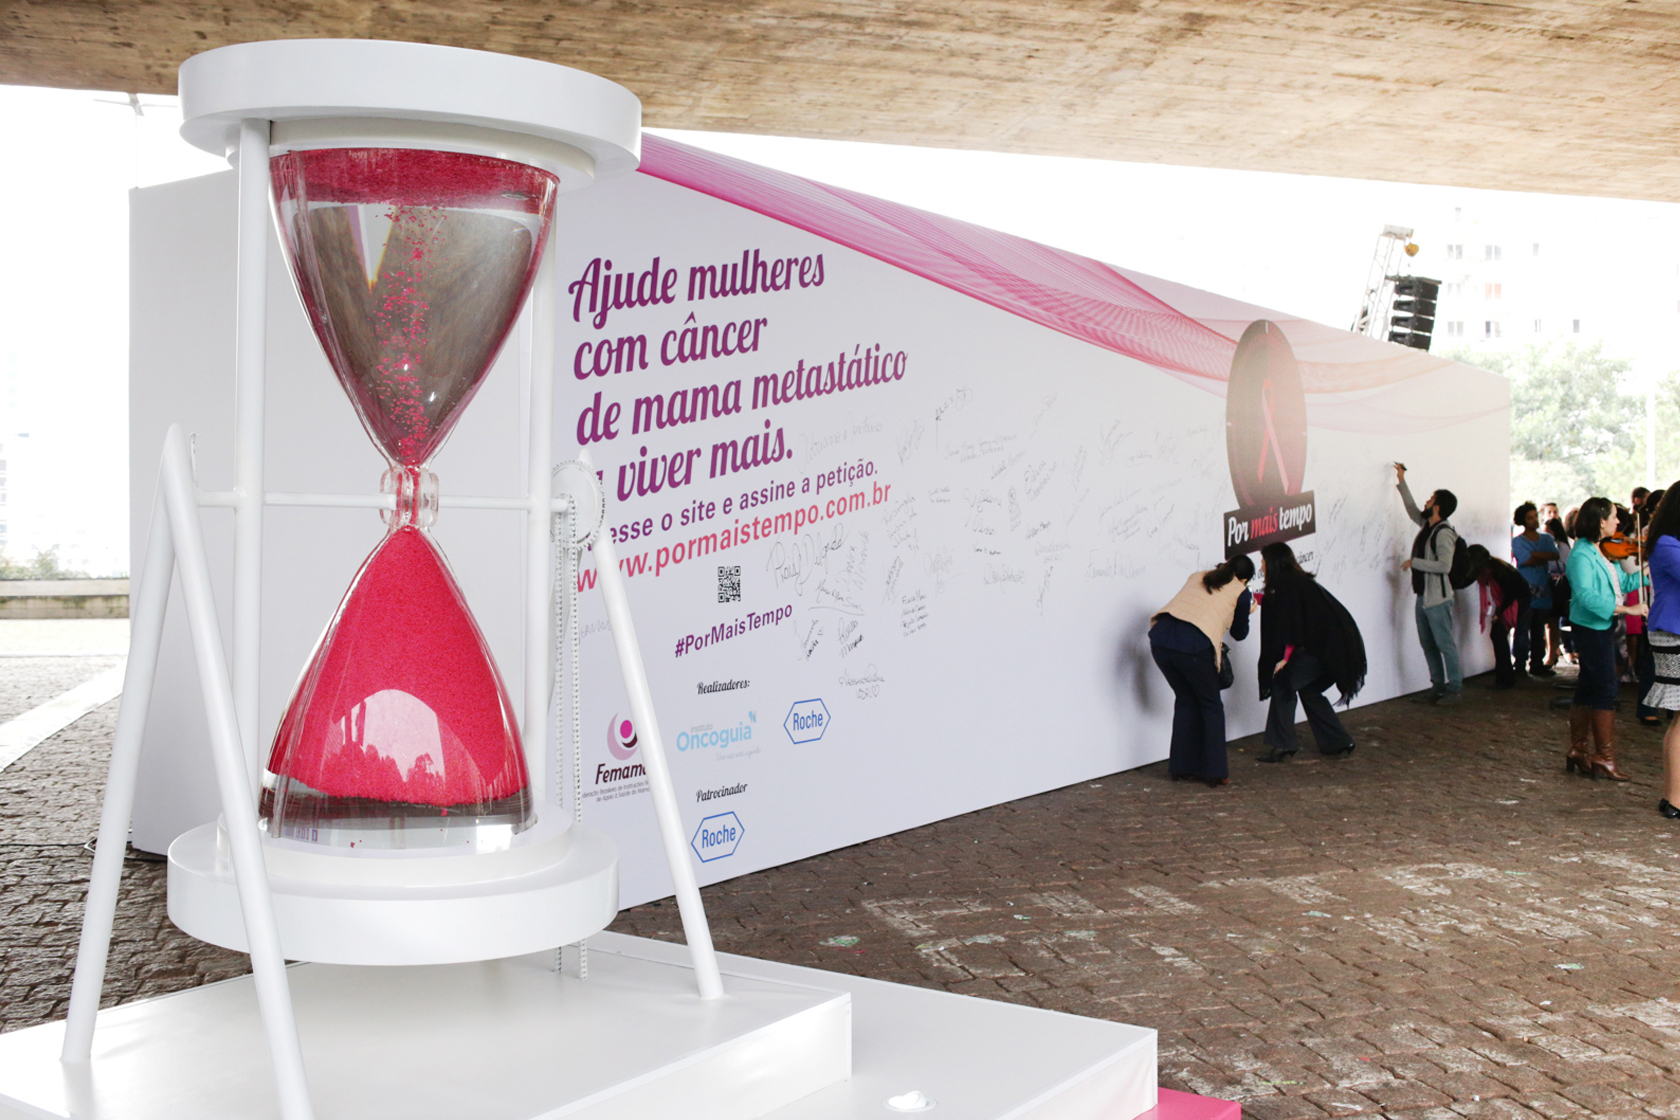 Giant hourglass sculpture where the fluid runs up at the Art Museum of Sao Paulo (MASP).